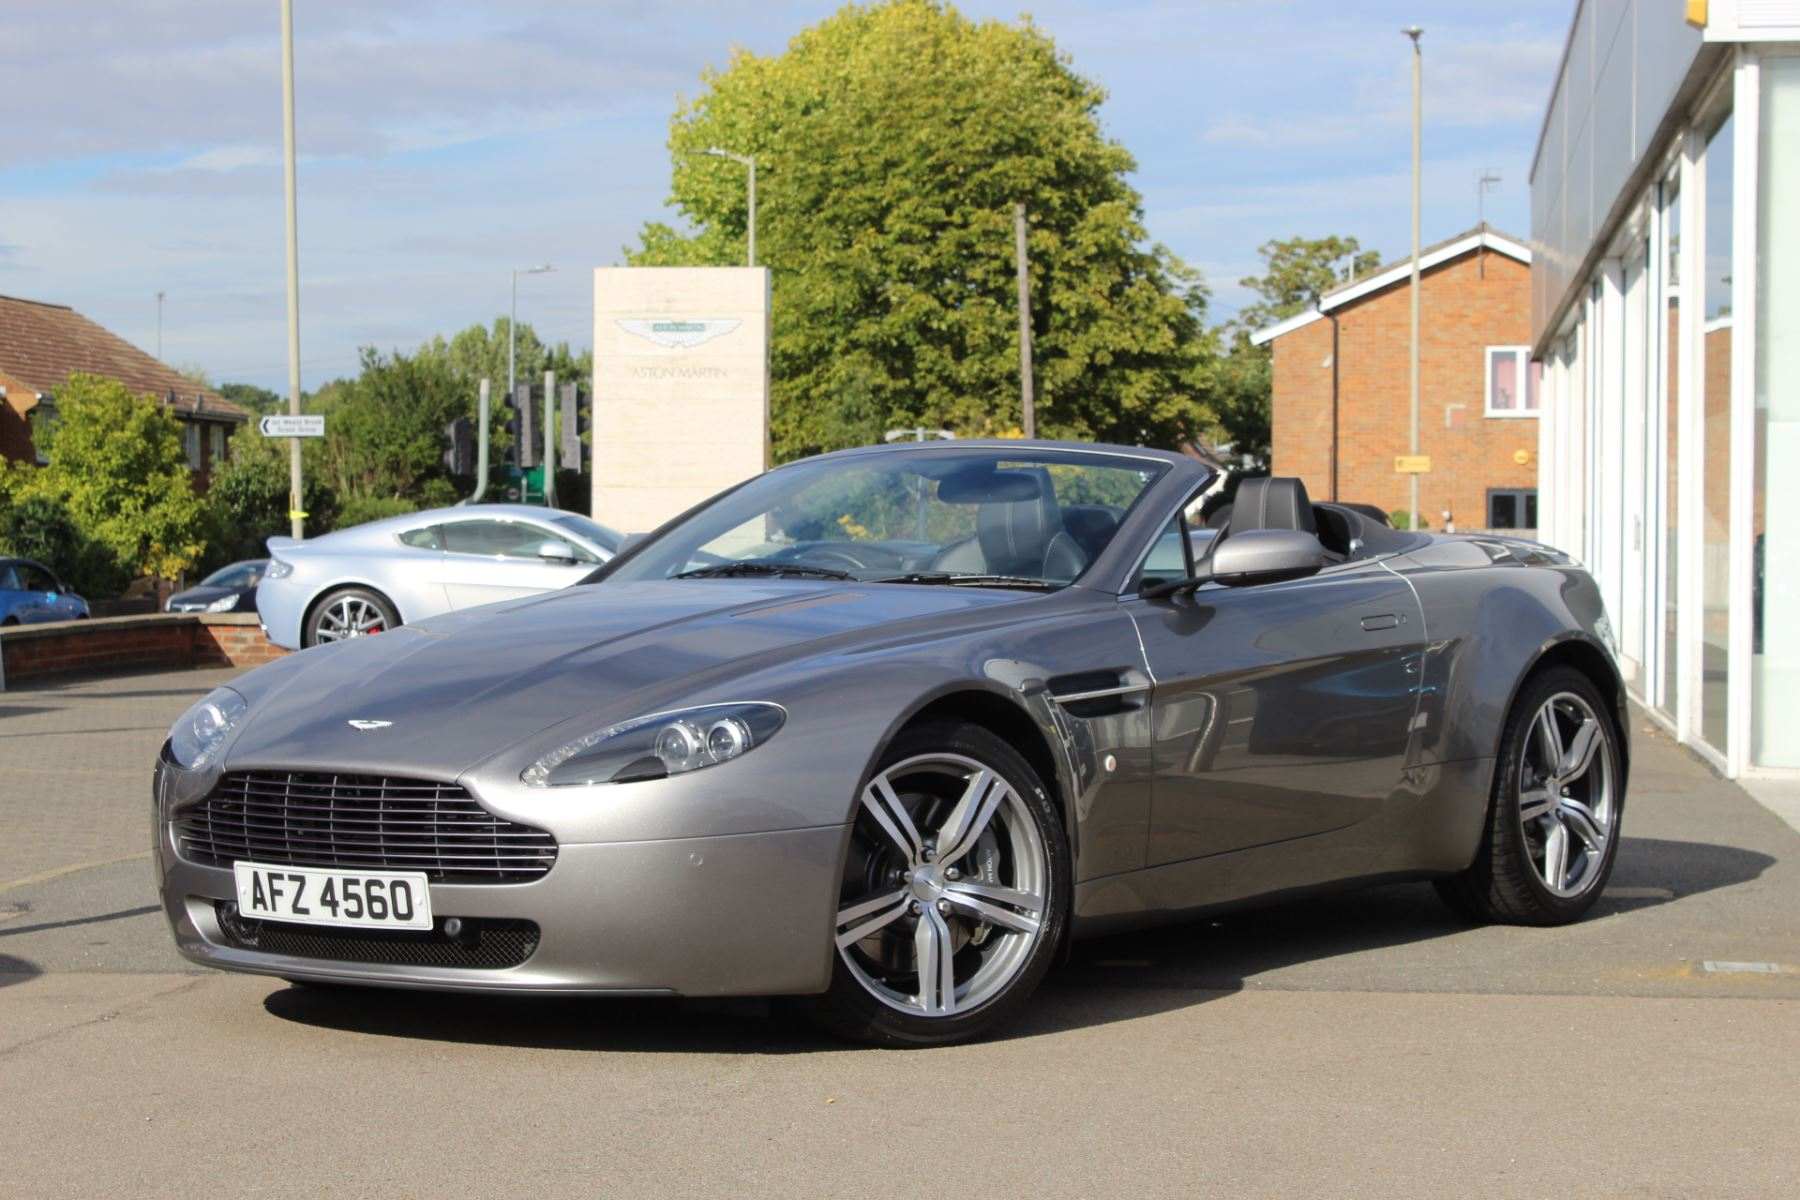 Aston Martin V8 Vantage Roadster 09my Car 4 7 Sports Shift 2 Door Roadster 2009 Available From Bentley Tunbridge Wells